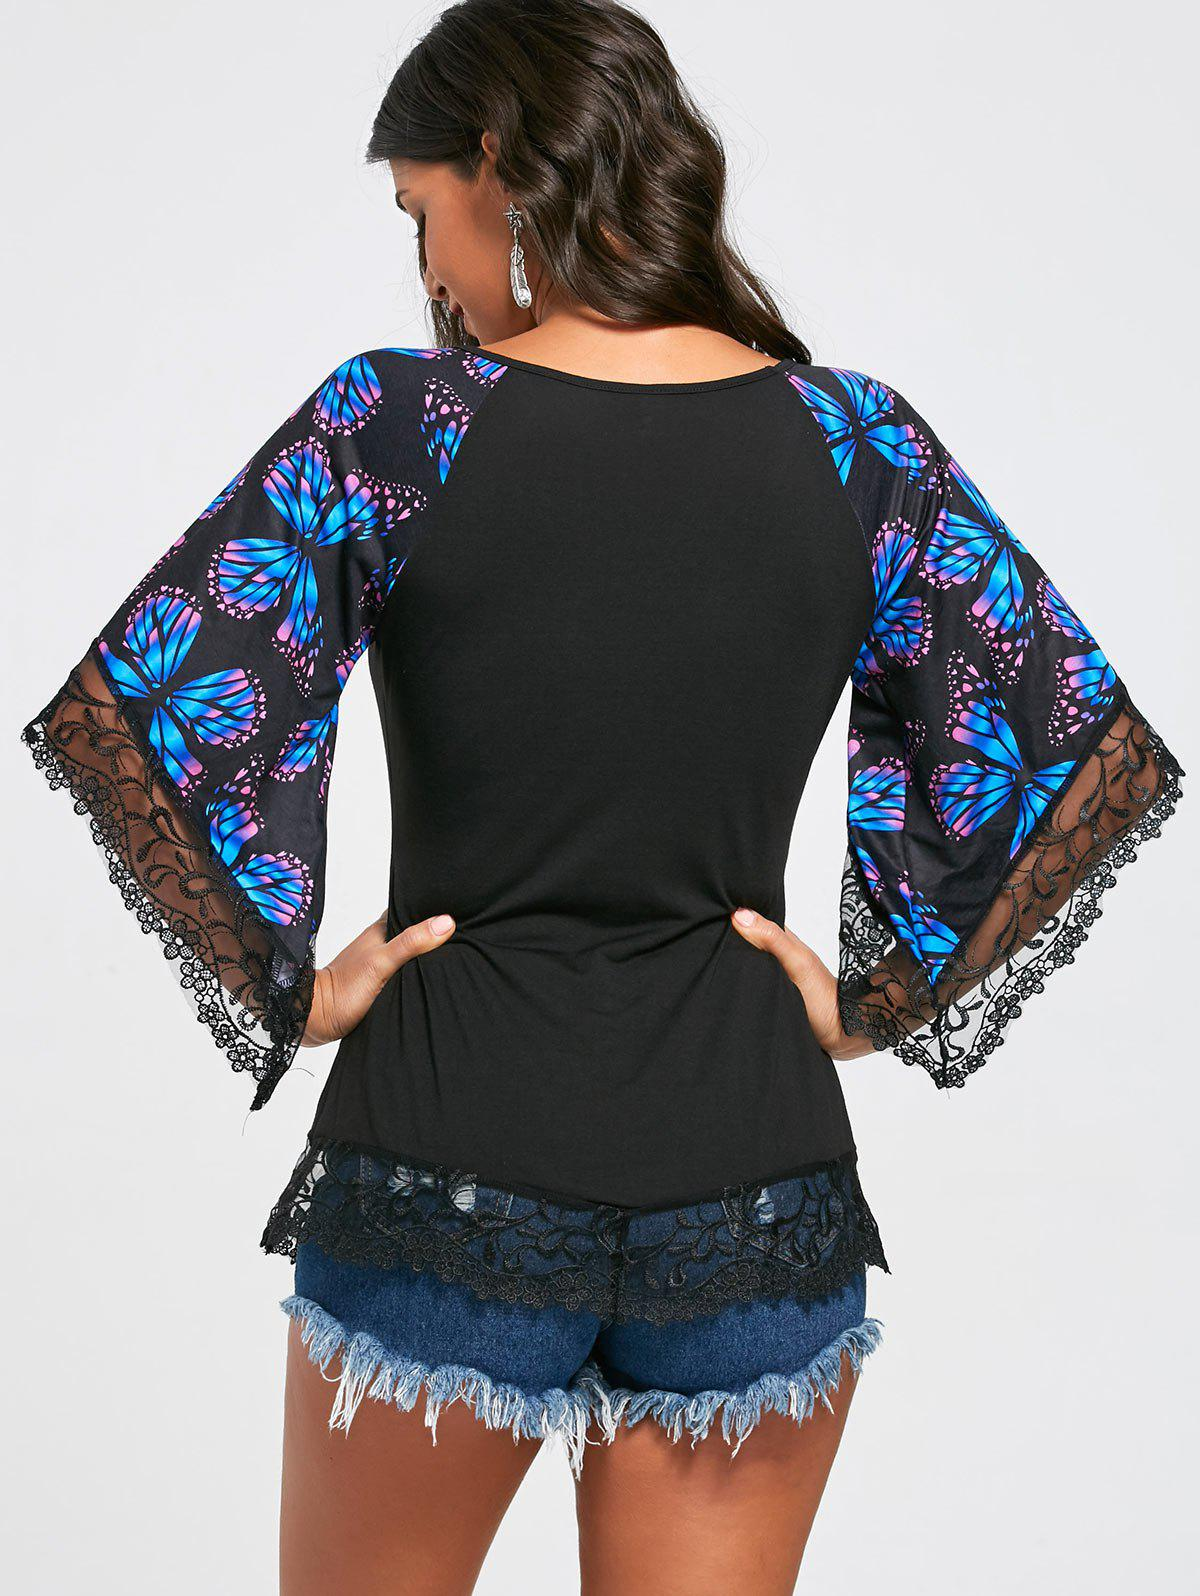 Butterfly Raglan Sleeve T-shirt with Lace Trim - BLUE L